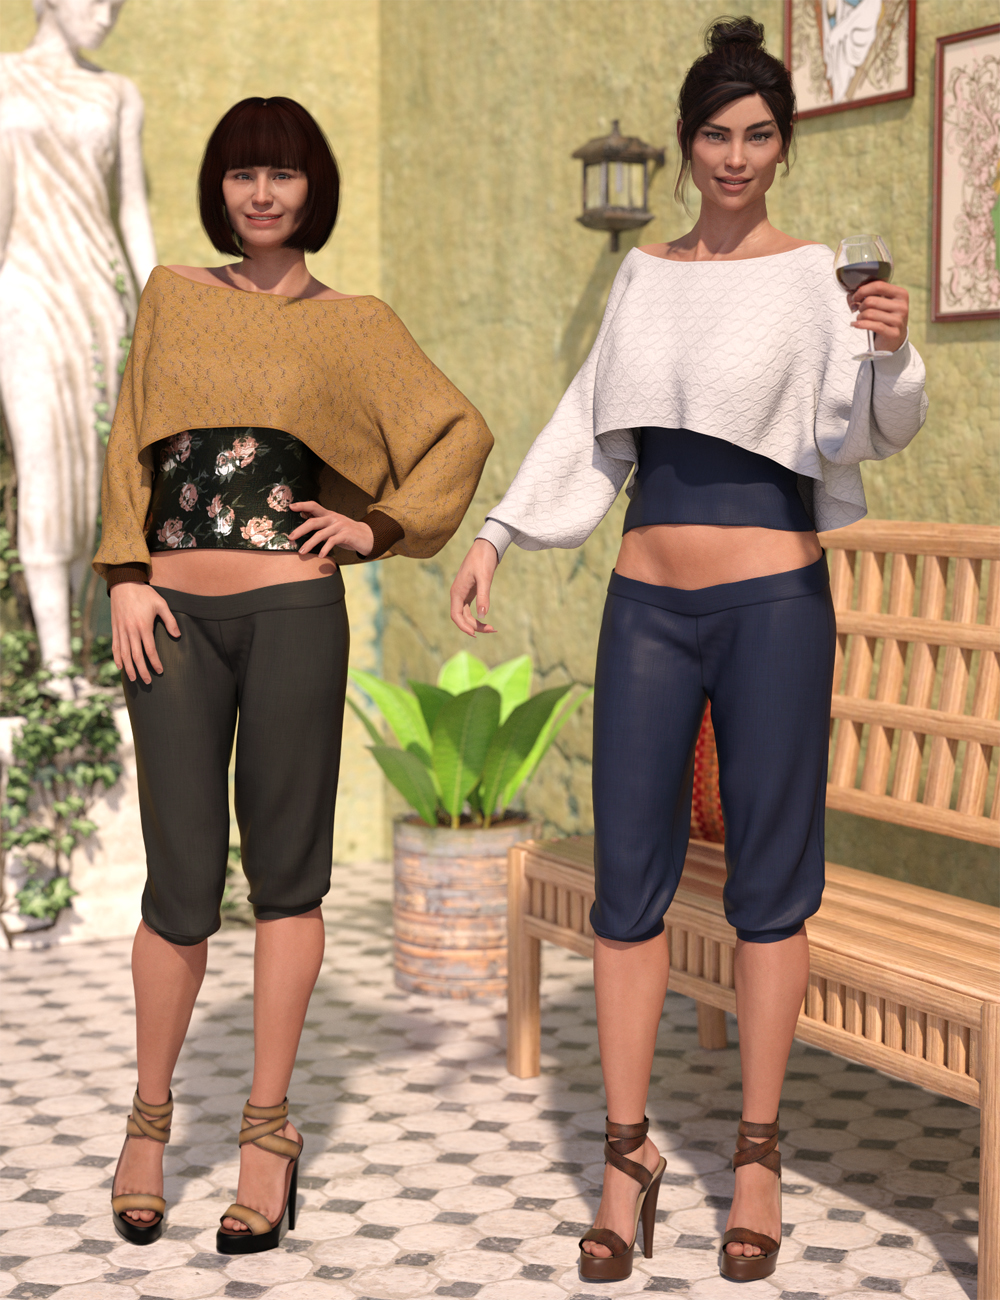 dForce Casual Chic Outfit Textures by: Sarsa, 3D Models by Daz 3D